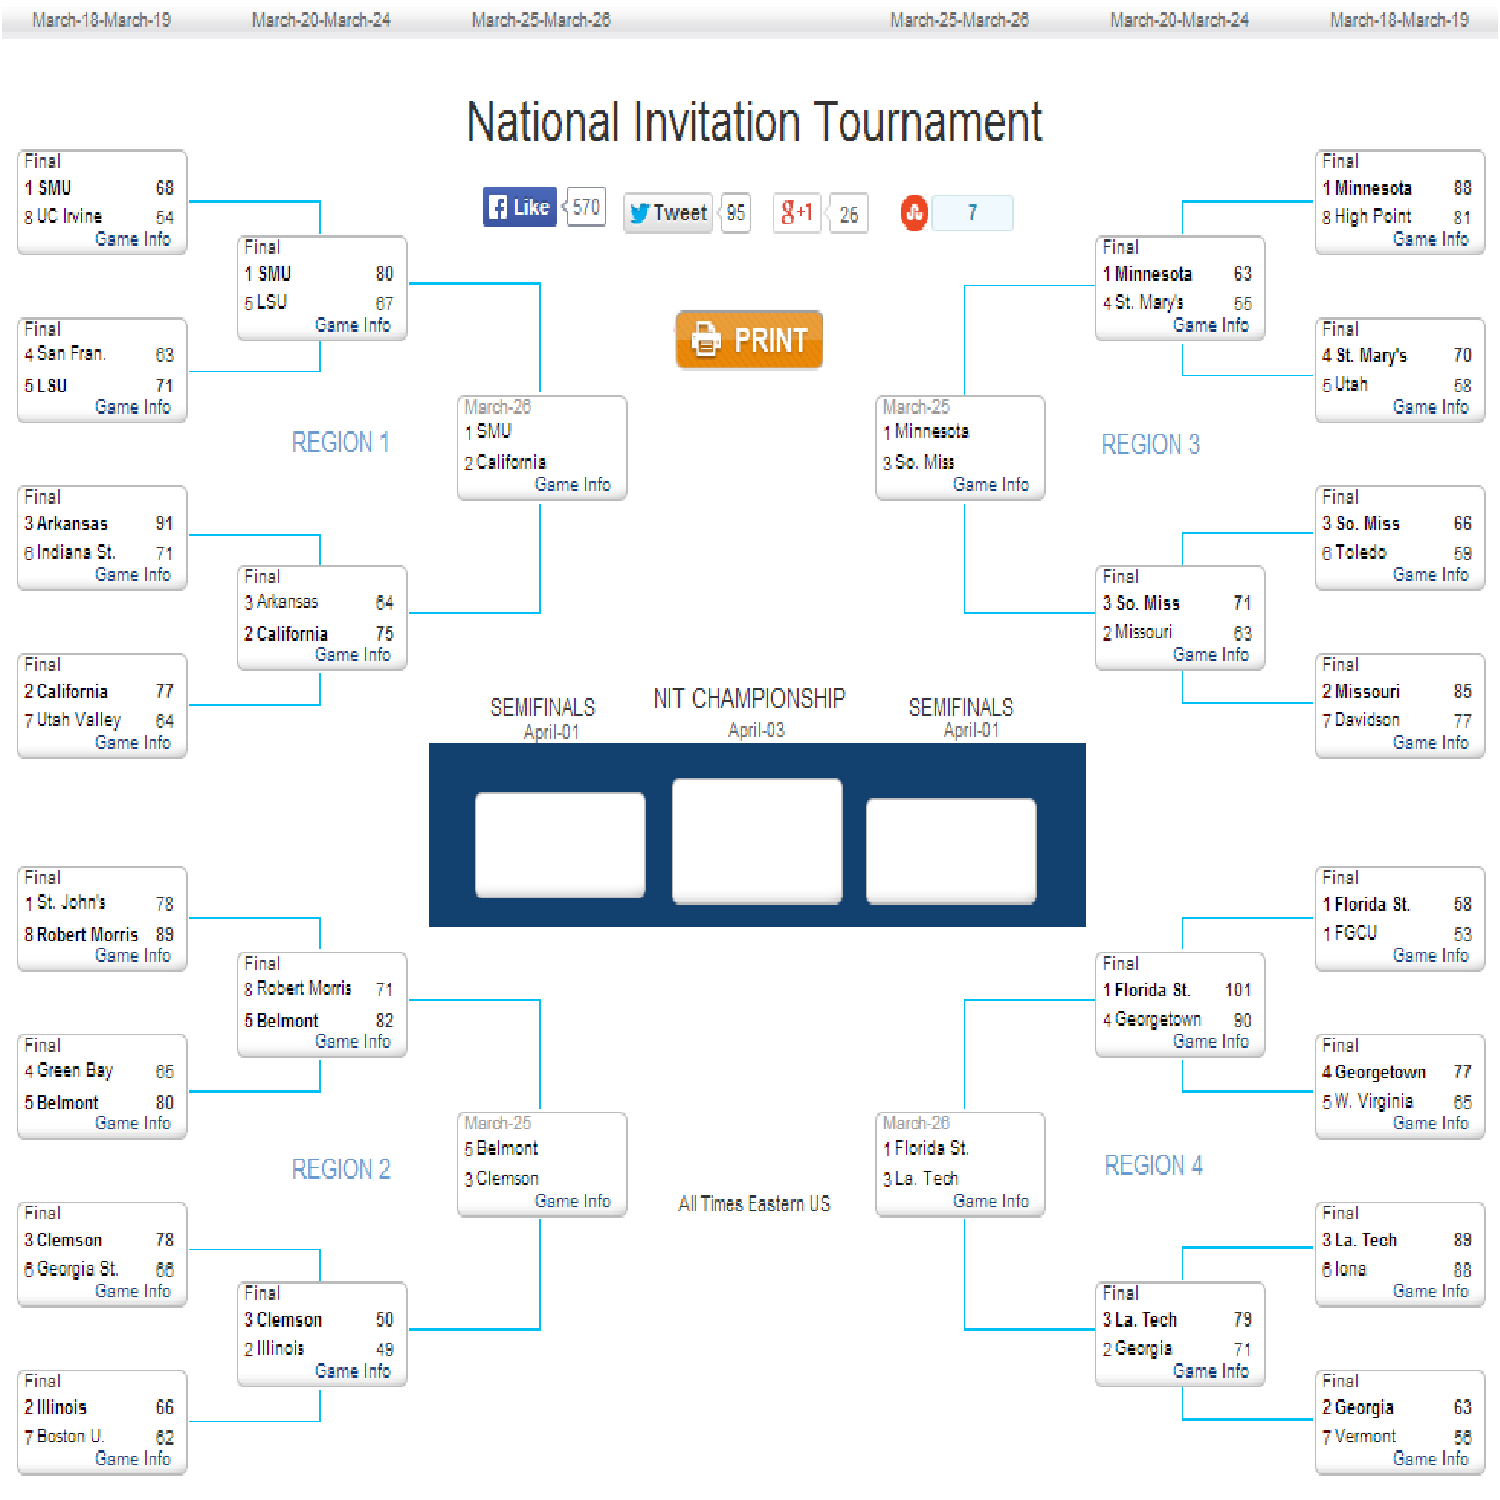 2014 NIT bracket and schedule: Top-seeded Minnesota faces Southern